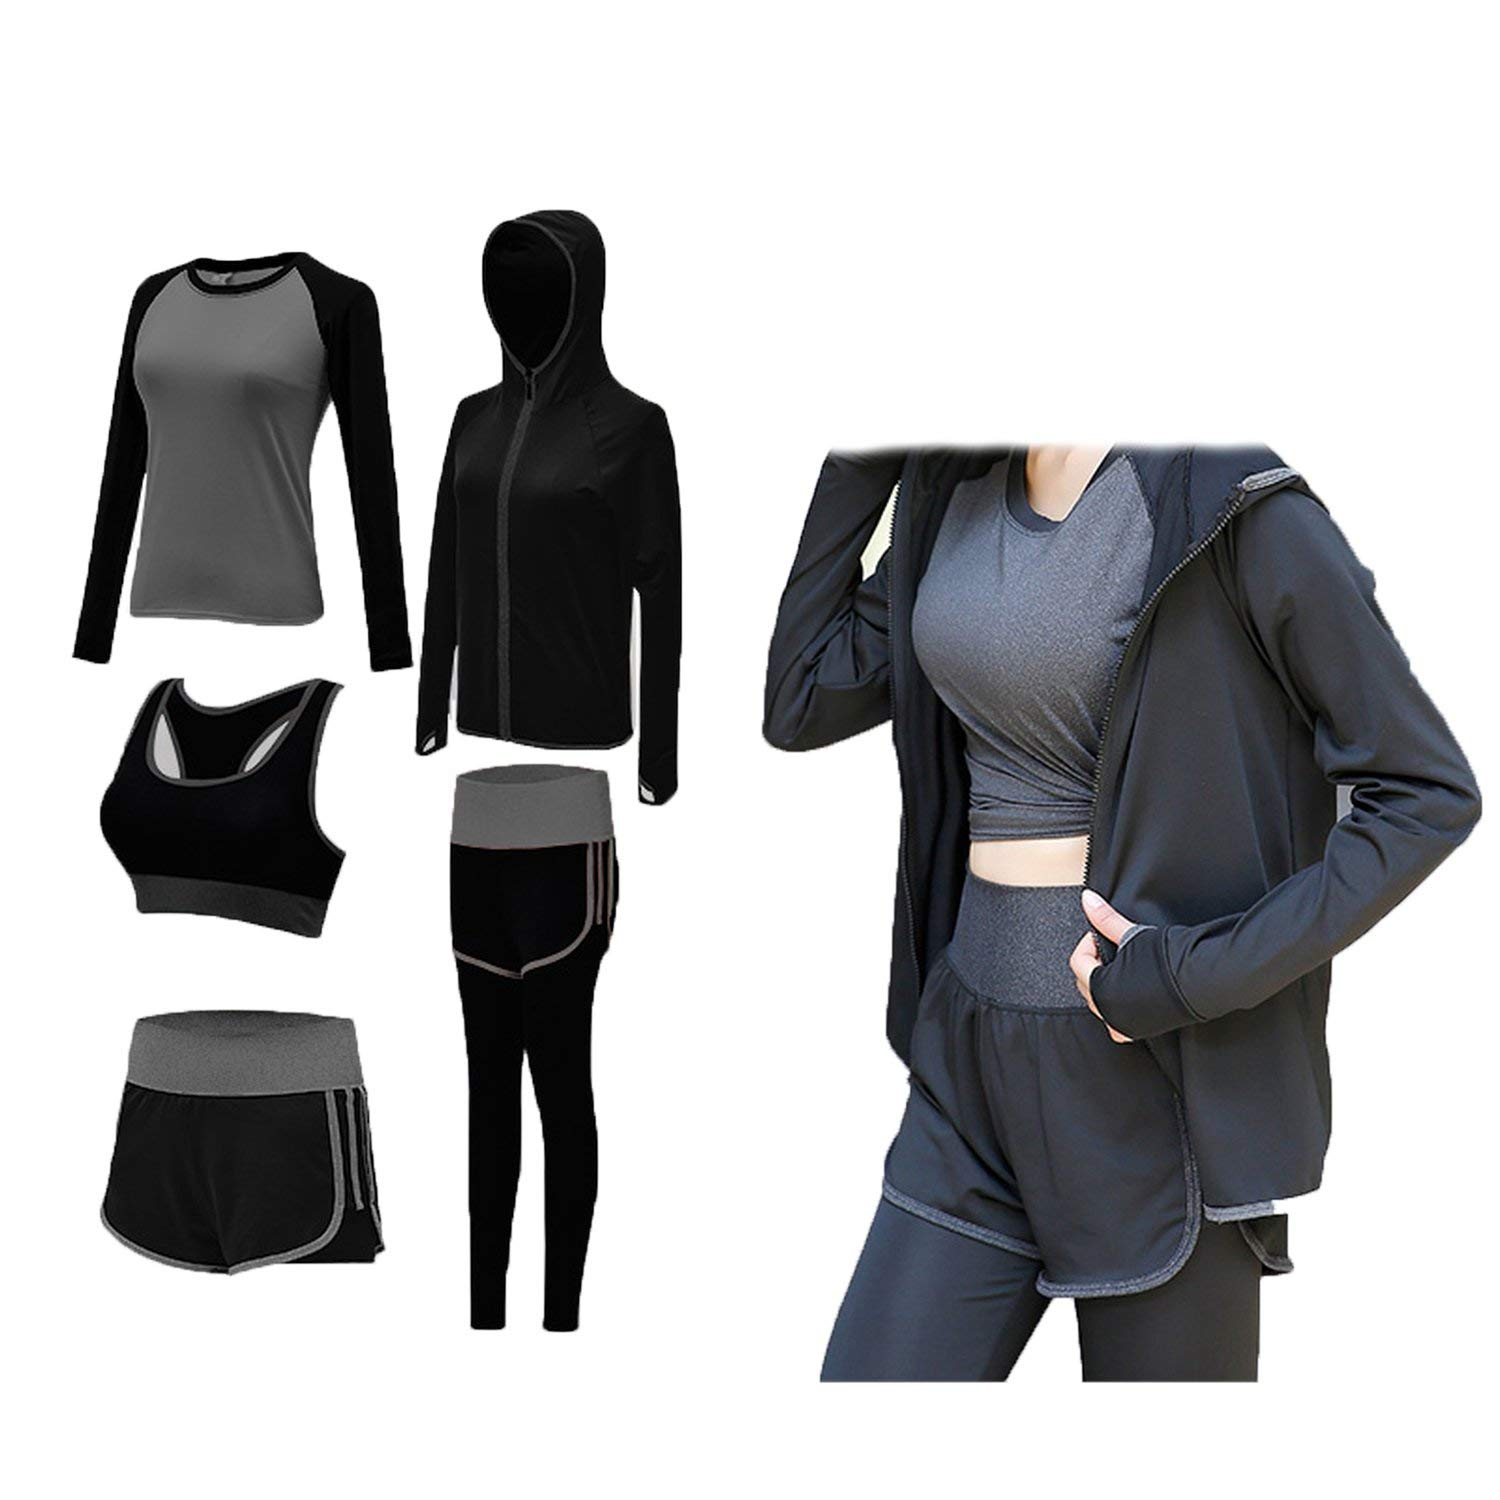 c00f283709d99 Get Quotations · Sports Suit Female Spring and Summer 2018 New Professional  Running Clothes Large Size Loose Gym Quick